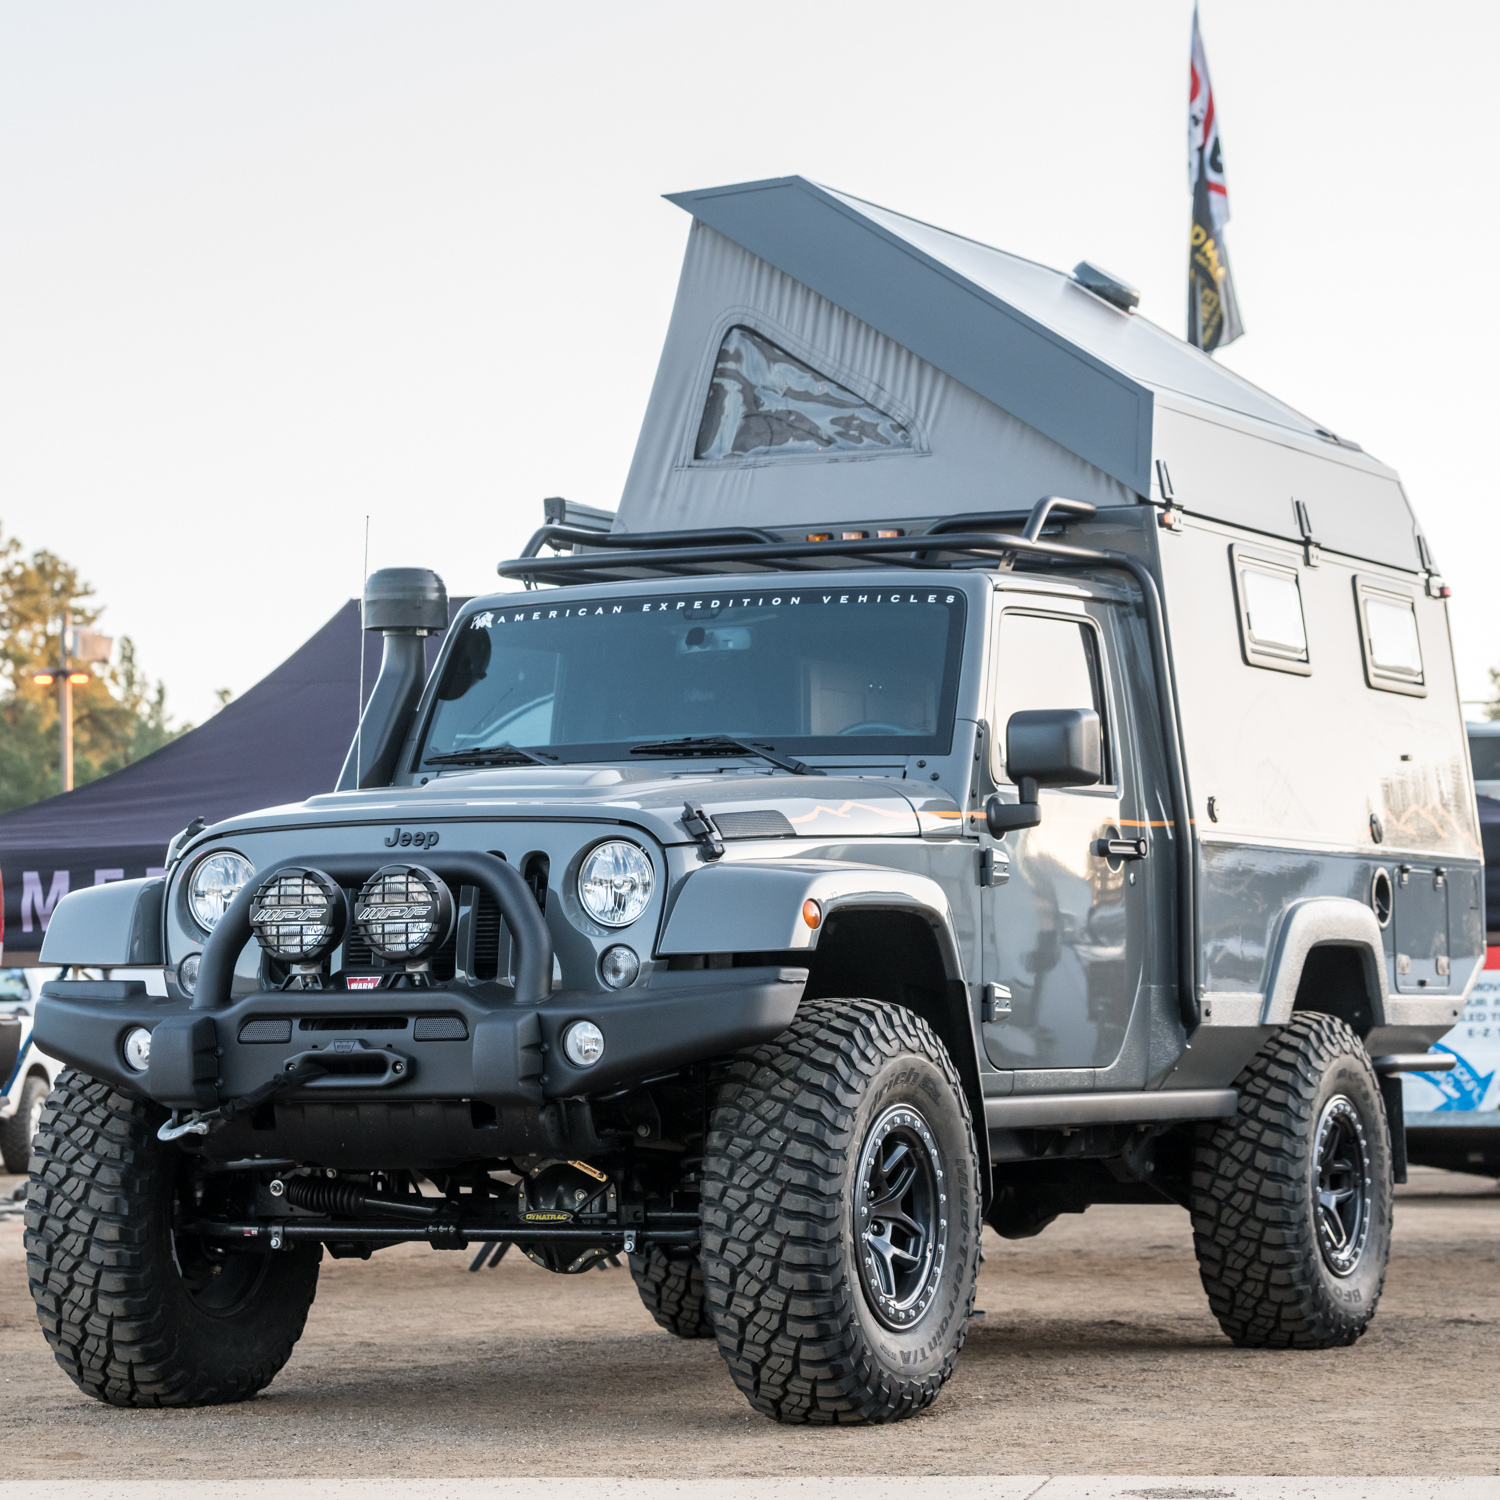 American Expedition Vehicles Jeep JKU Outpost II